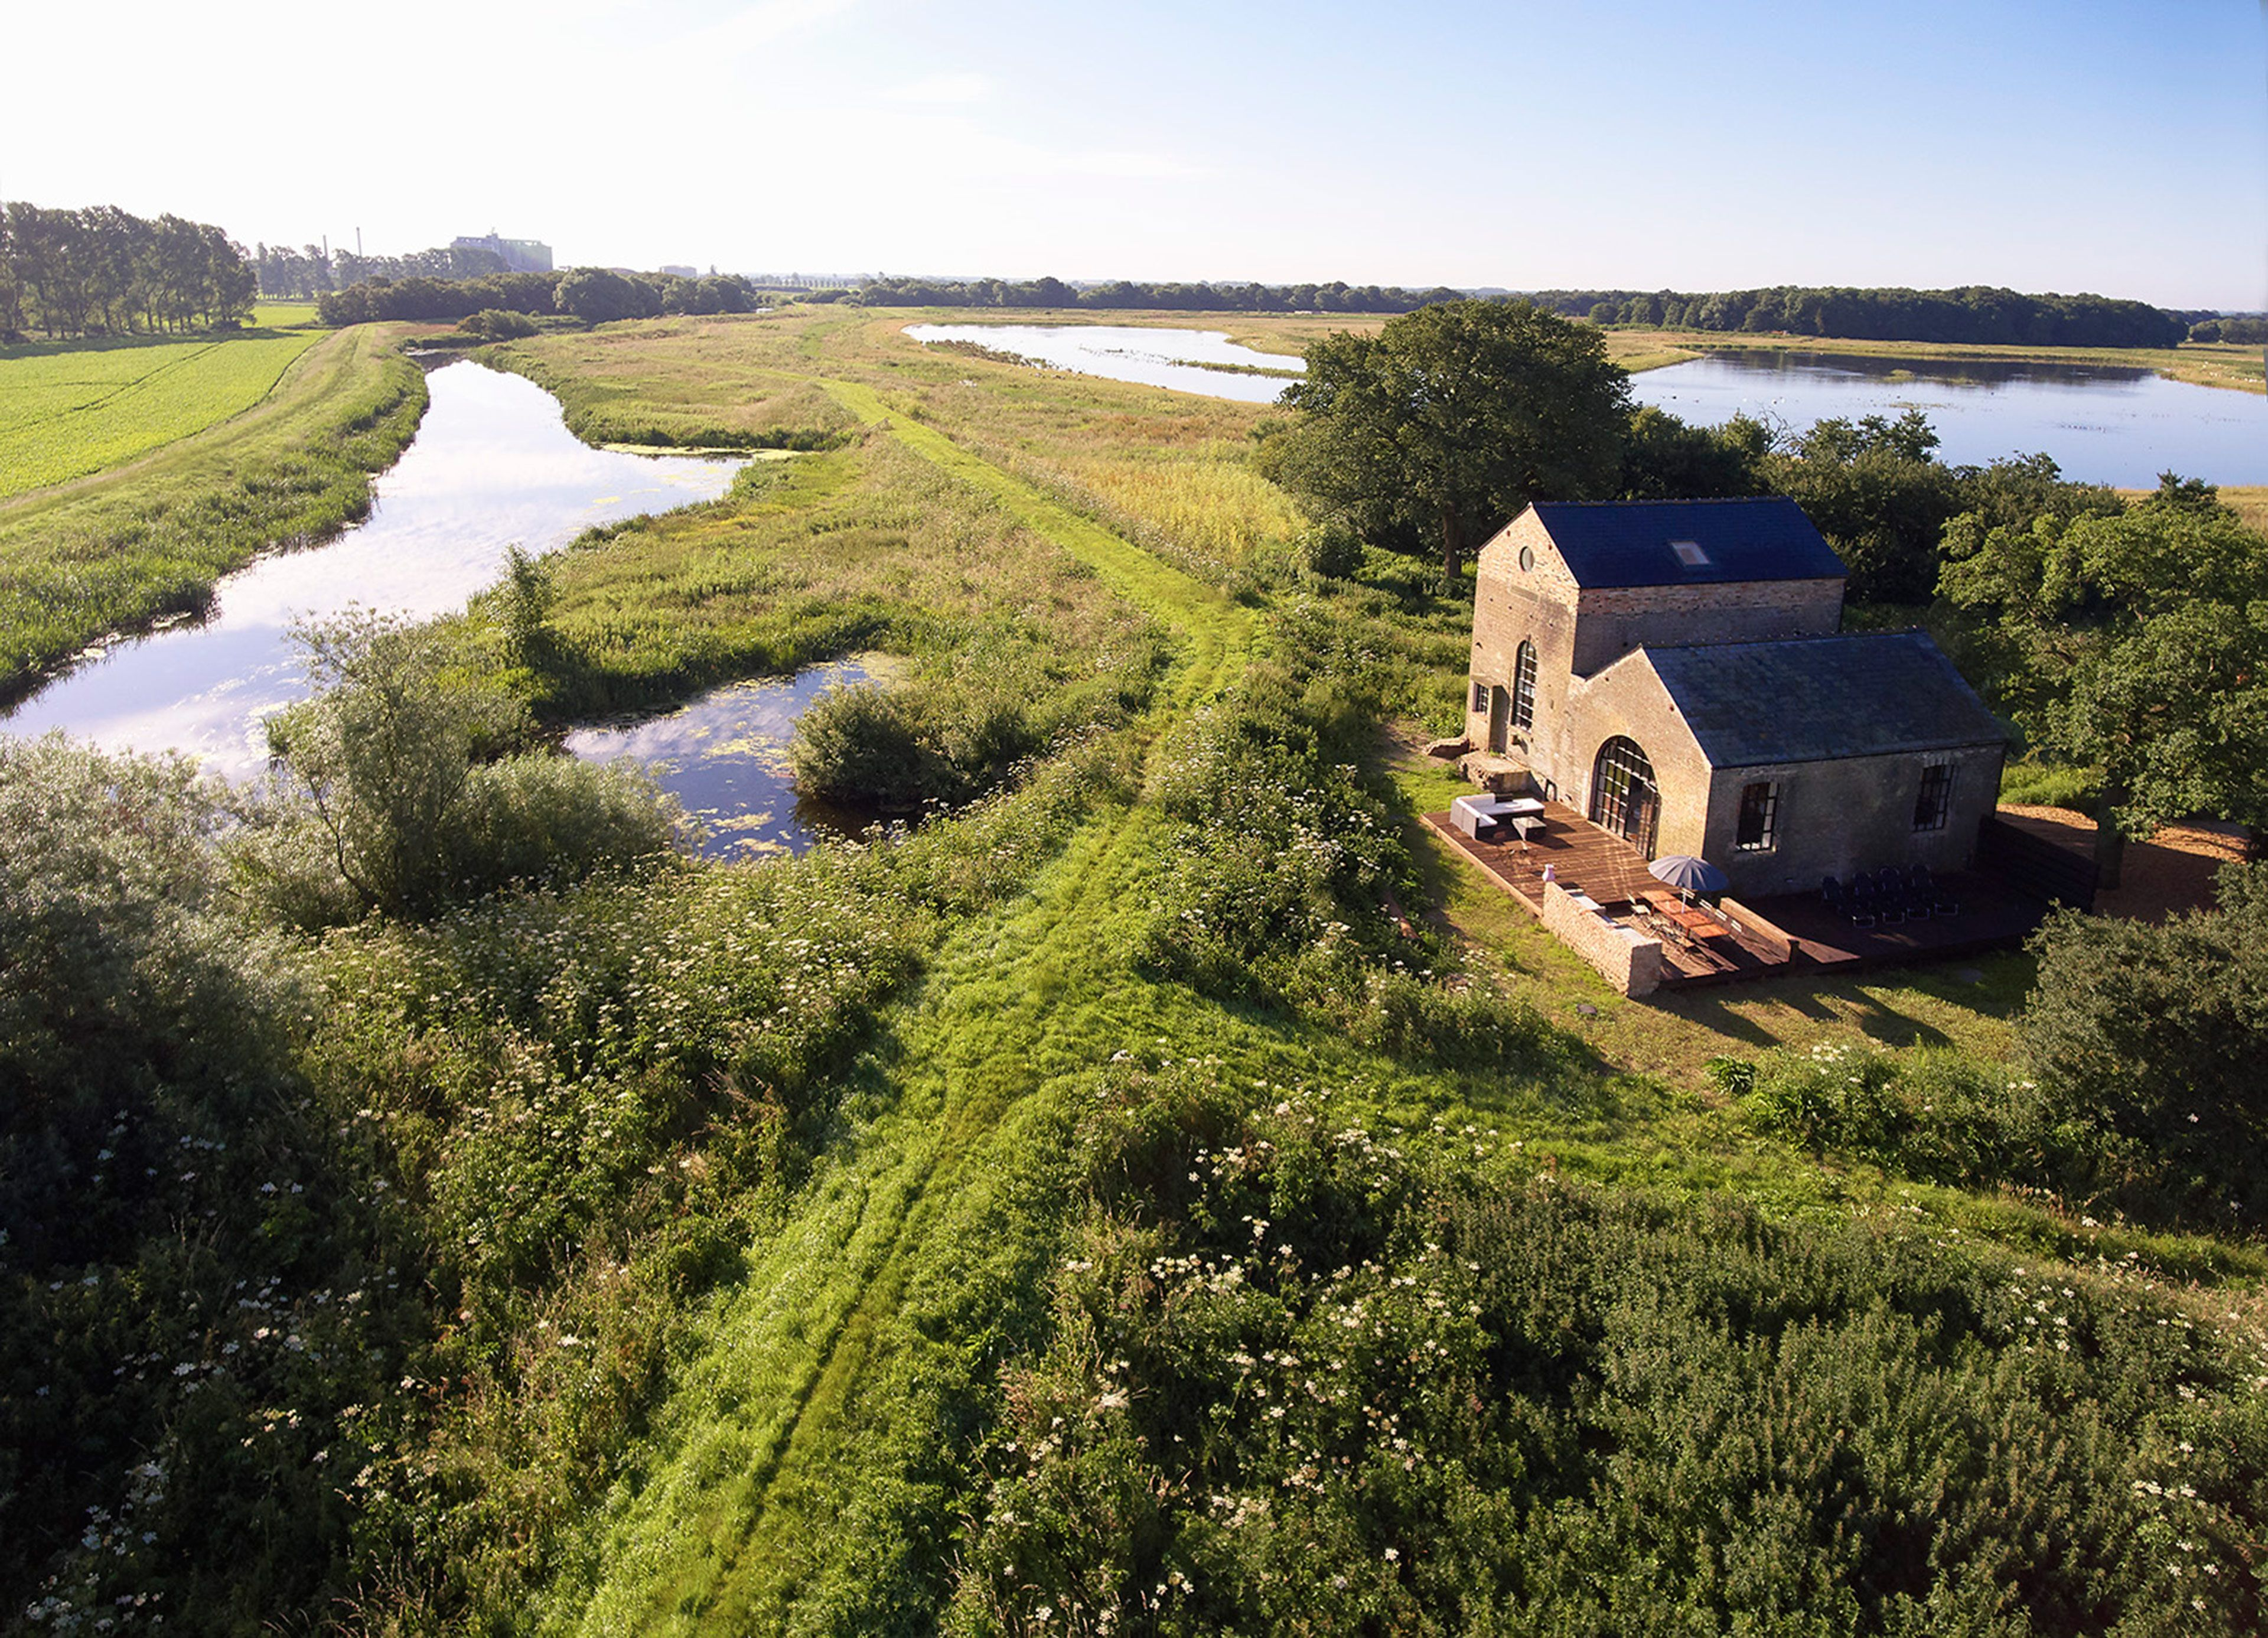 The Pumphouse Holiday cottages and homes in Norfolk Rural Retreats